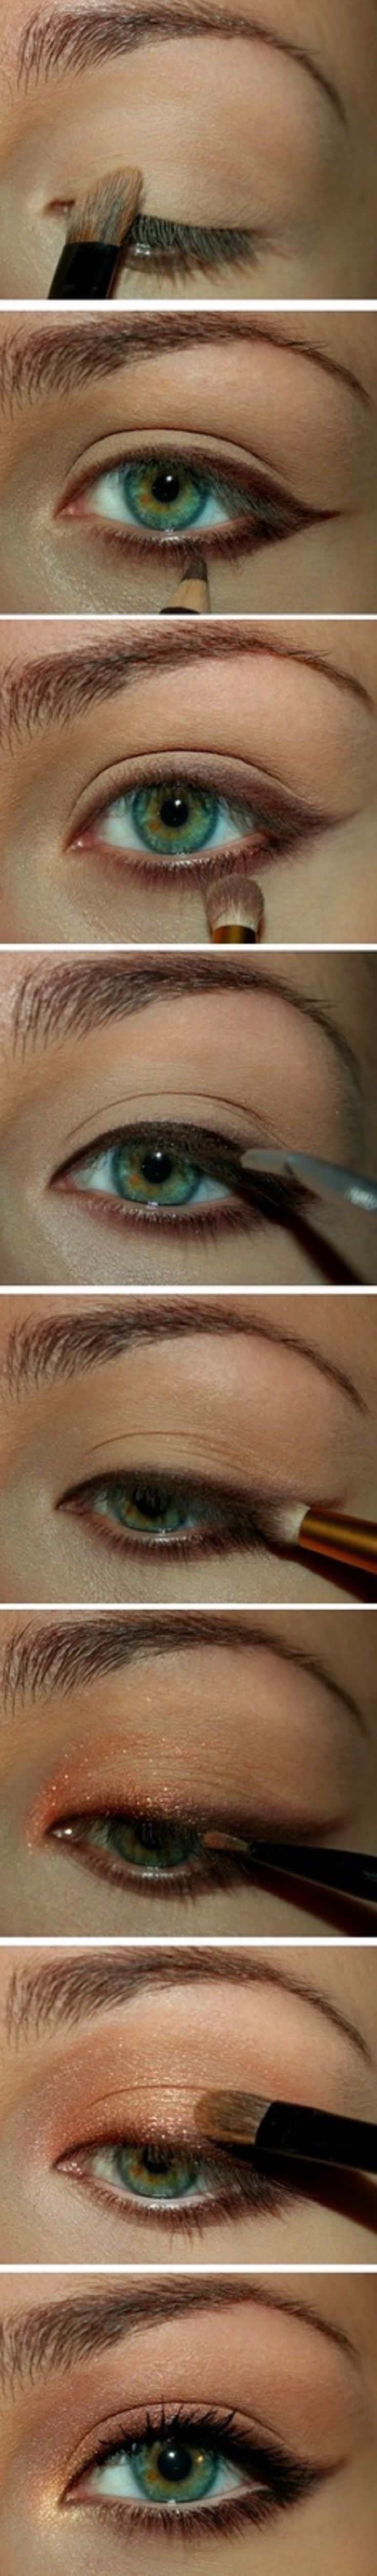 10 quick makeup tutorials for busy mornings